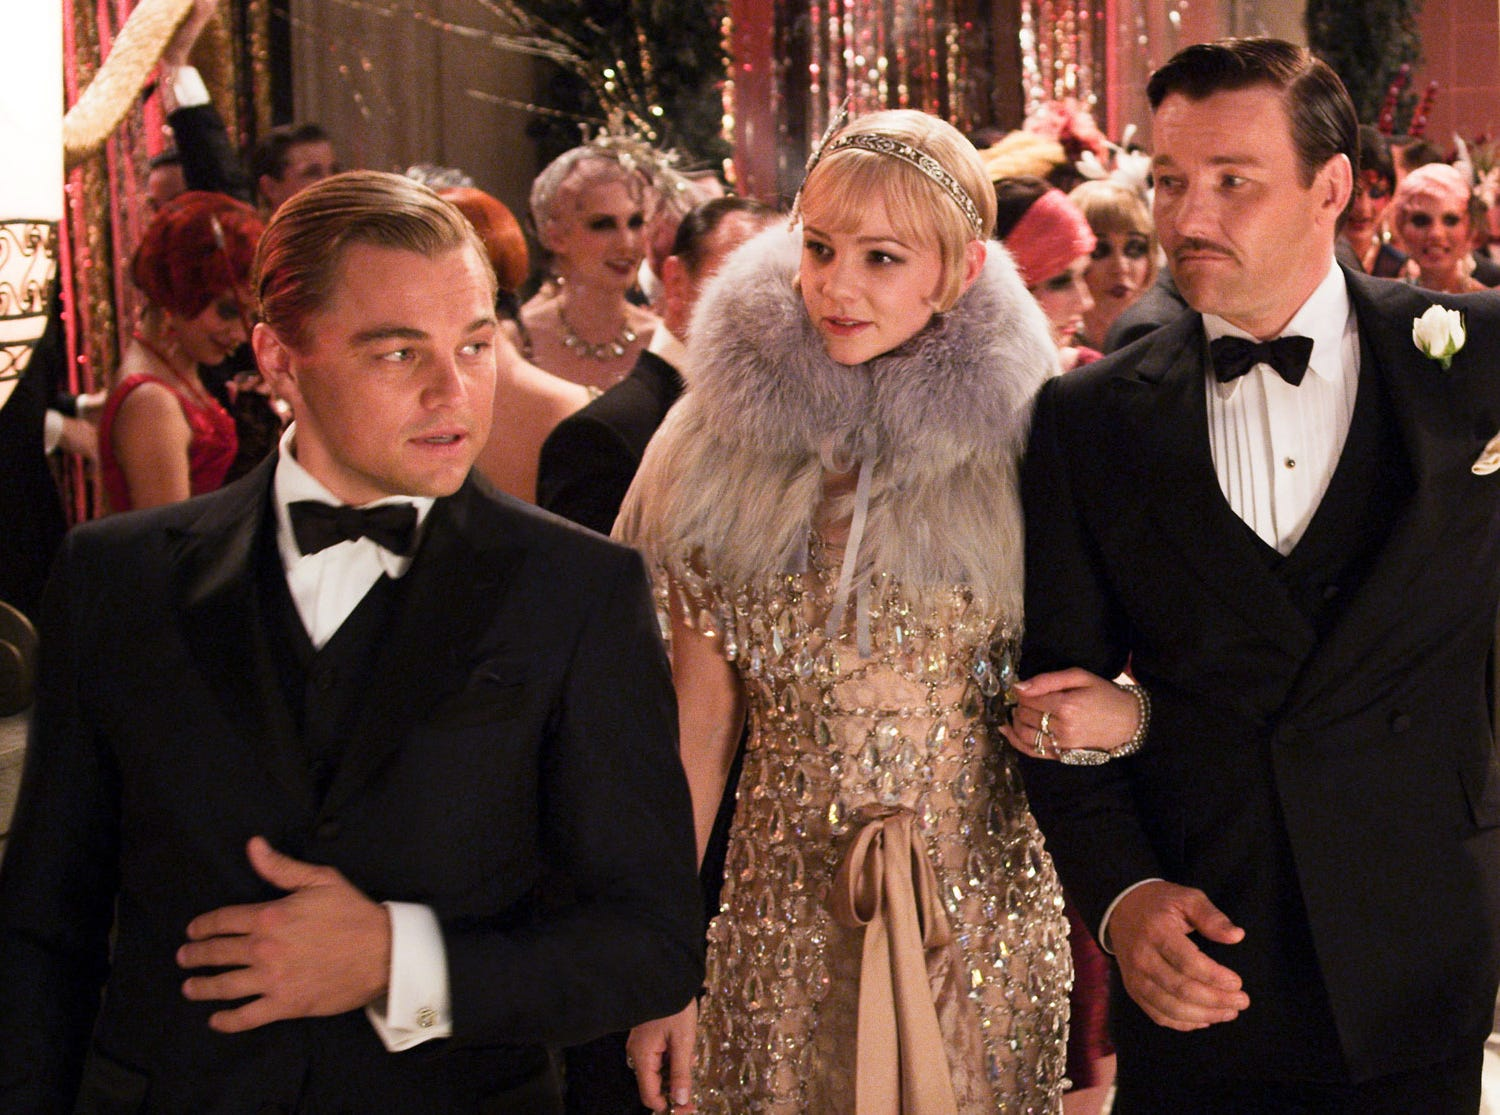 'The Great Gatsby': Leonardo DiCaprio, Carey Mulligan and Joel Edgerton aren't the only things that are gorgeous to look at it in this adaptation. Just pour yourself some champagne and dive into the decadence that this embodies.